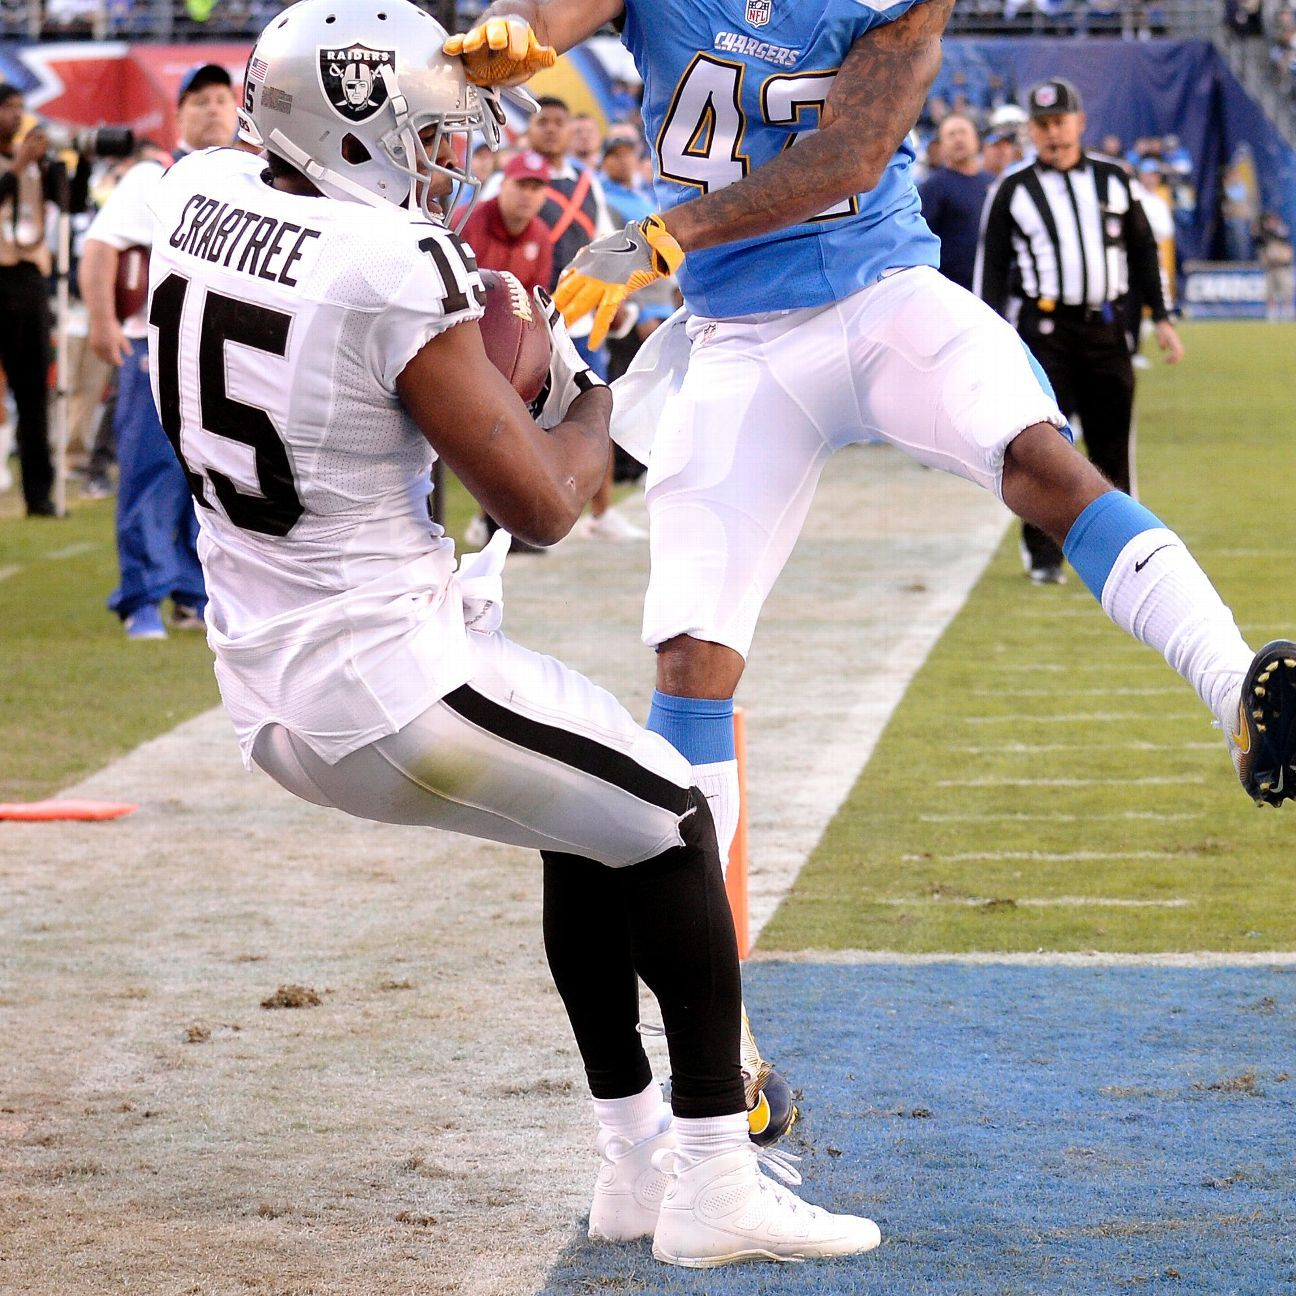 Michael Crabtree's 'Slice of Blue' catch is in Oakland ...